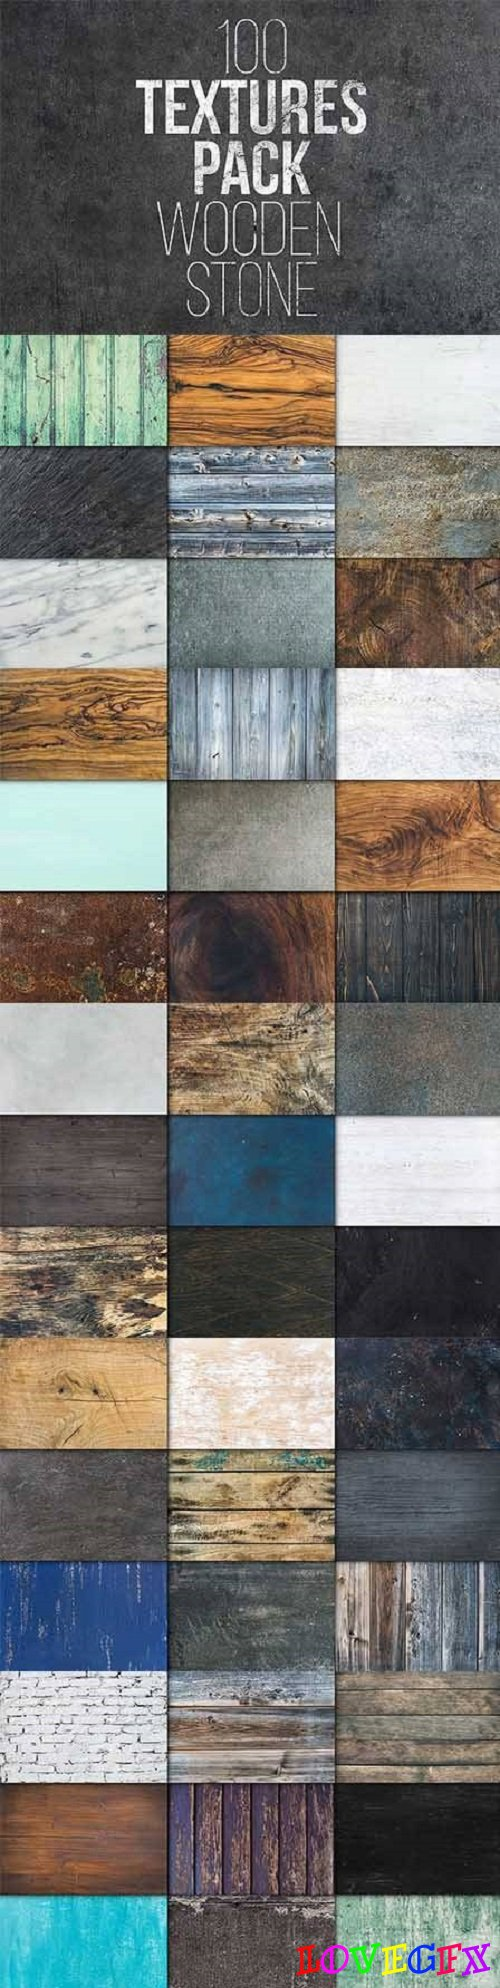 100 Textures Pack. Wooden & Stone 1723951